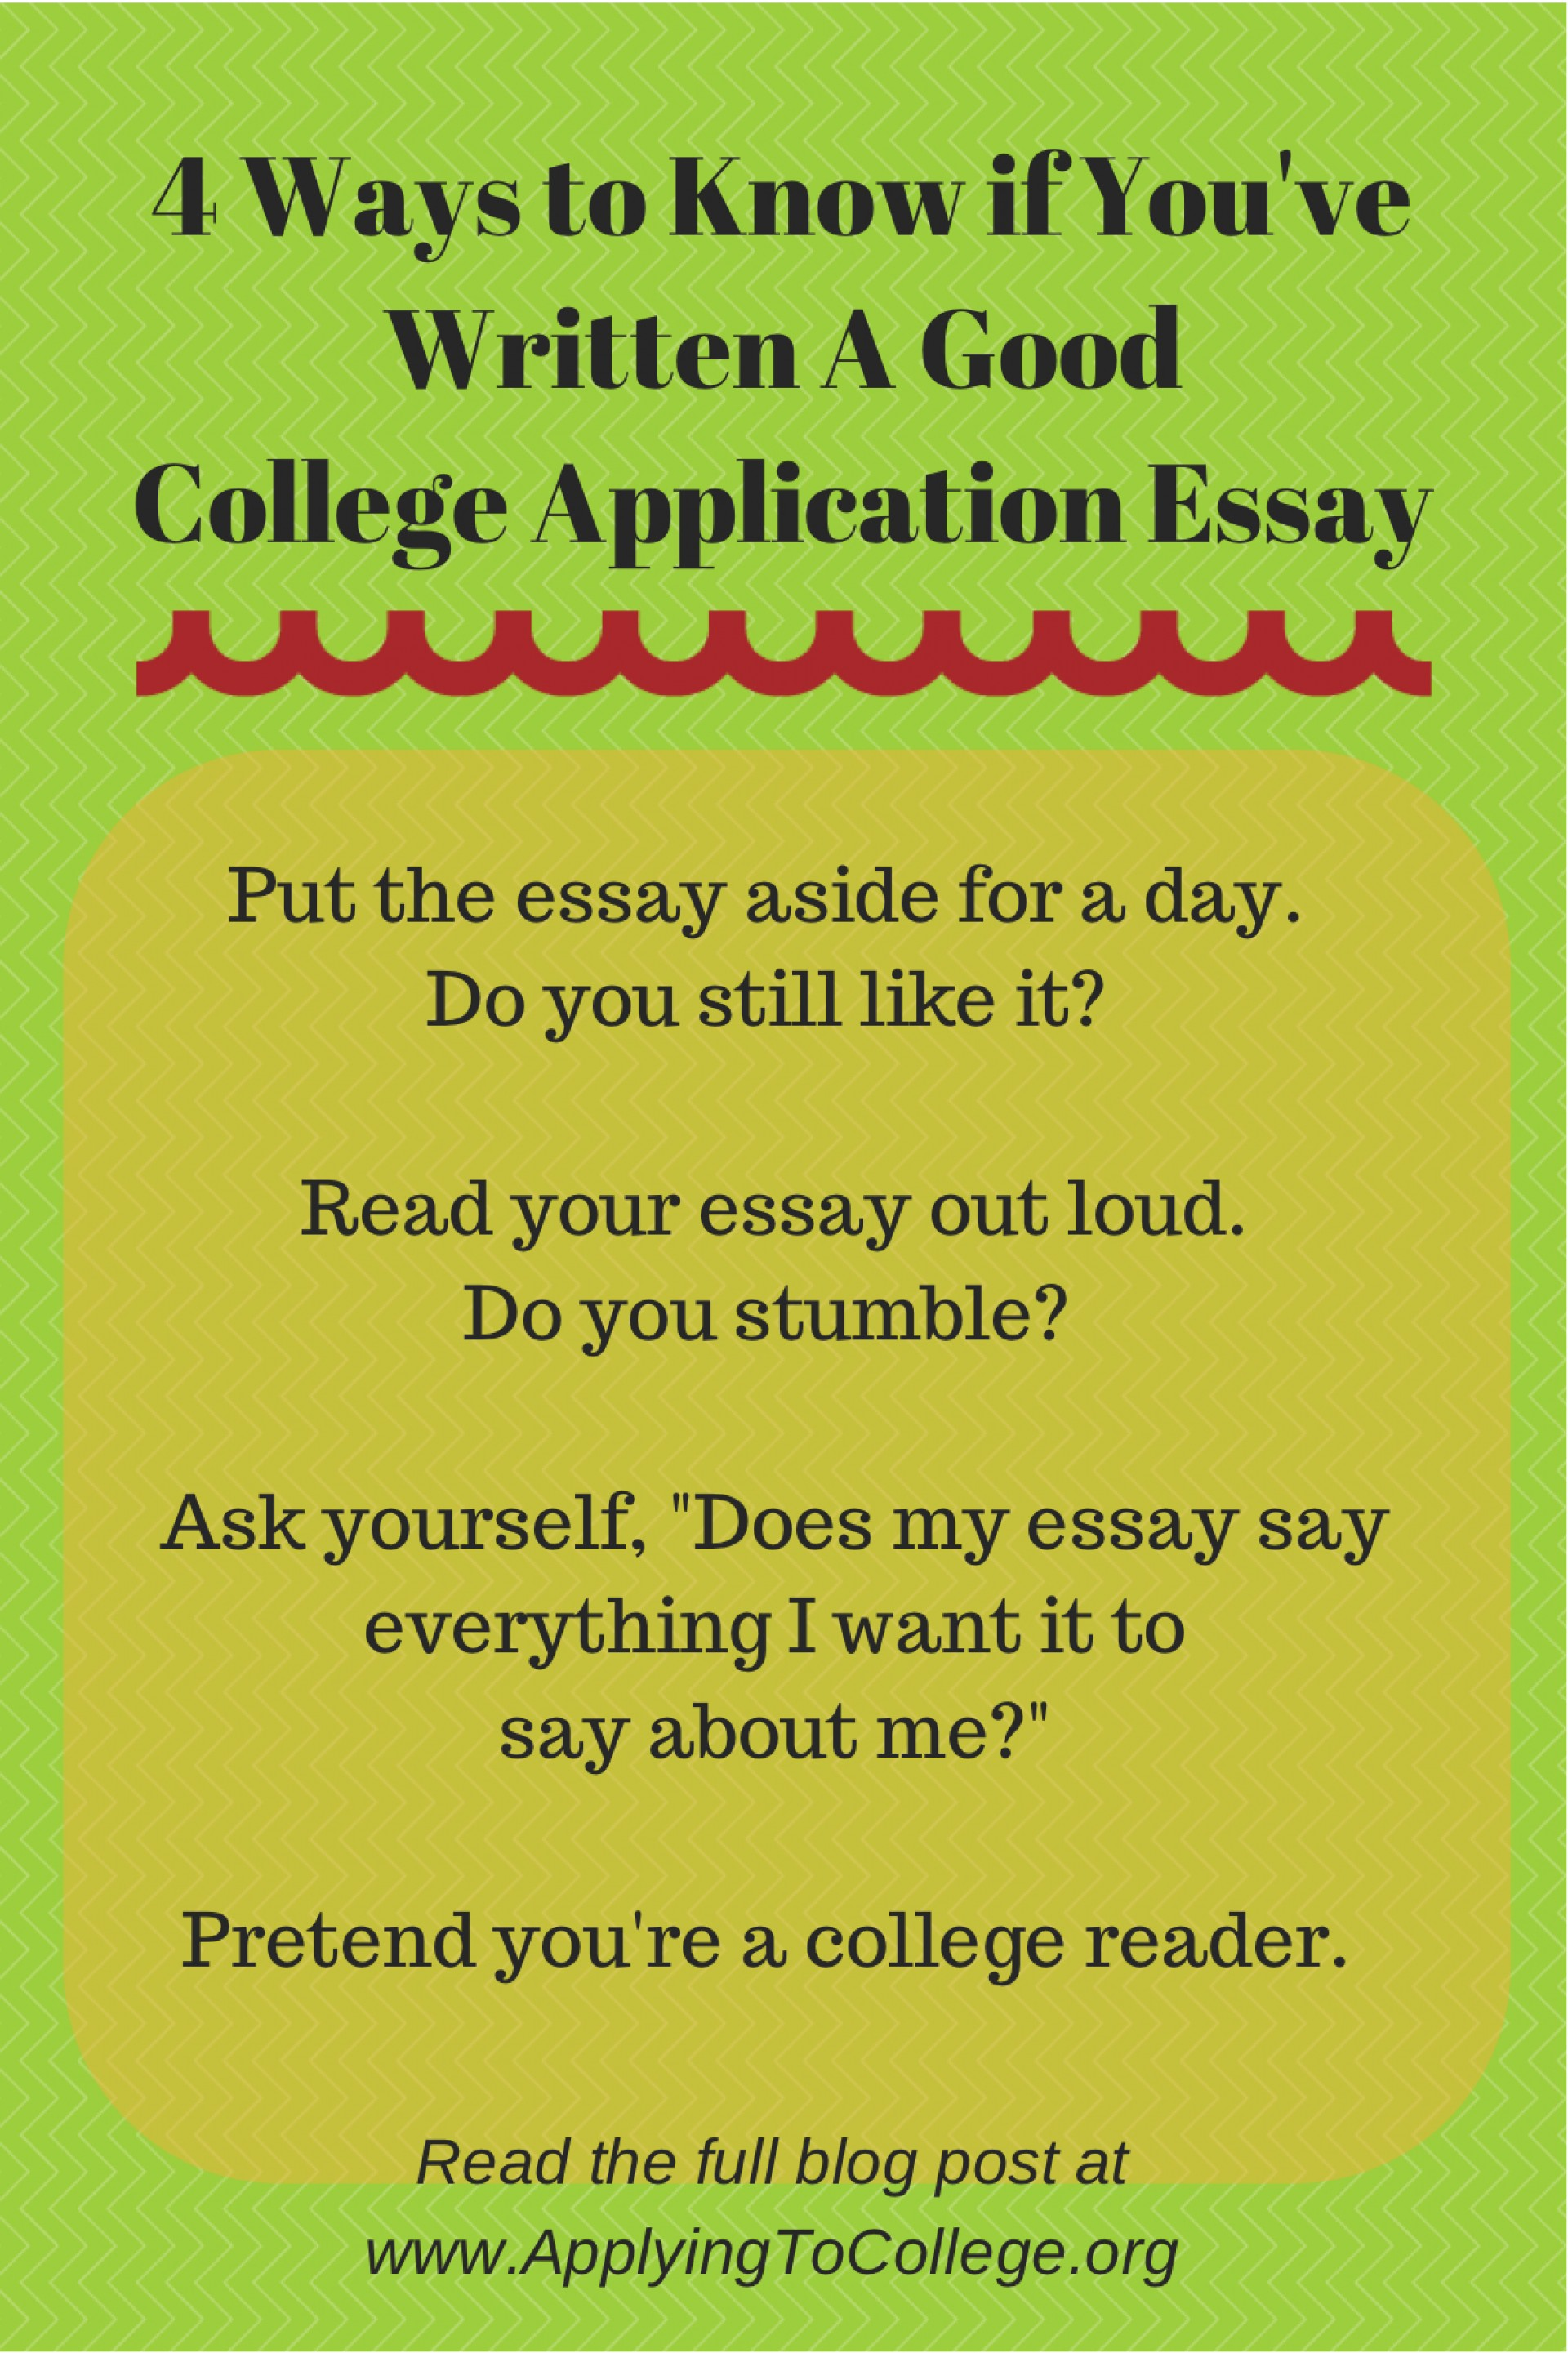 009 4ways To Know If Youve Written Good Read My Essay Unusual Online Reddit For Free 1920